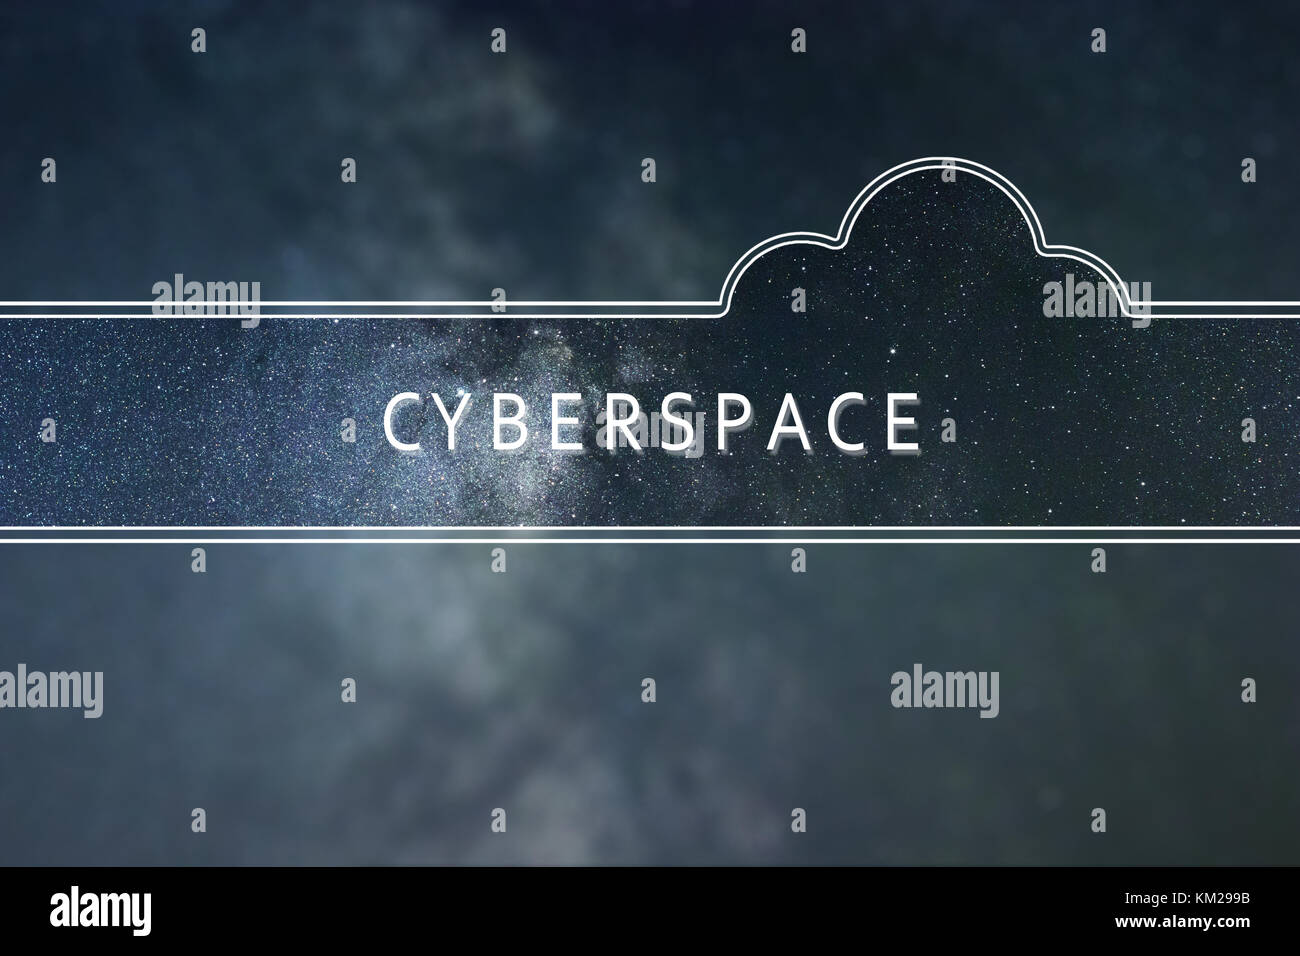 CYBERSPACE word cloud Concept. Space background. - Stock Image